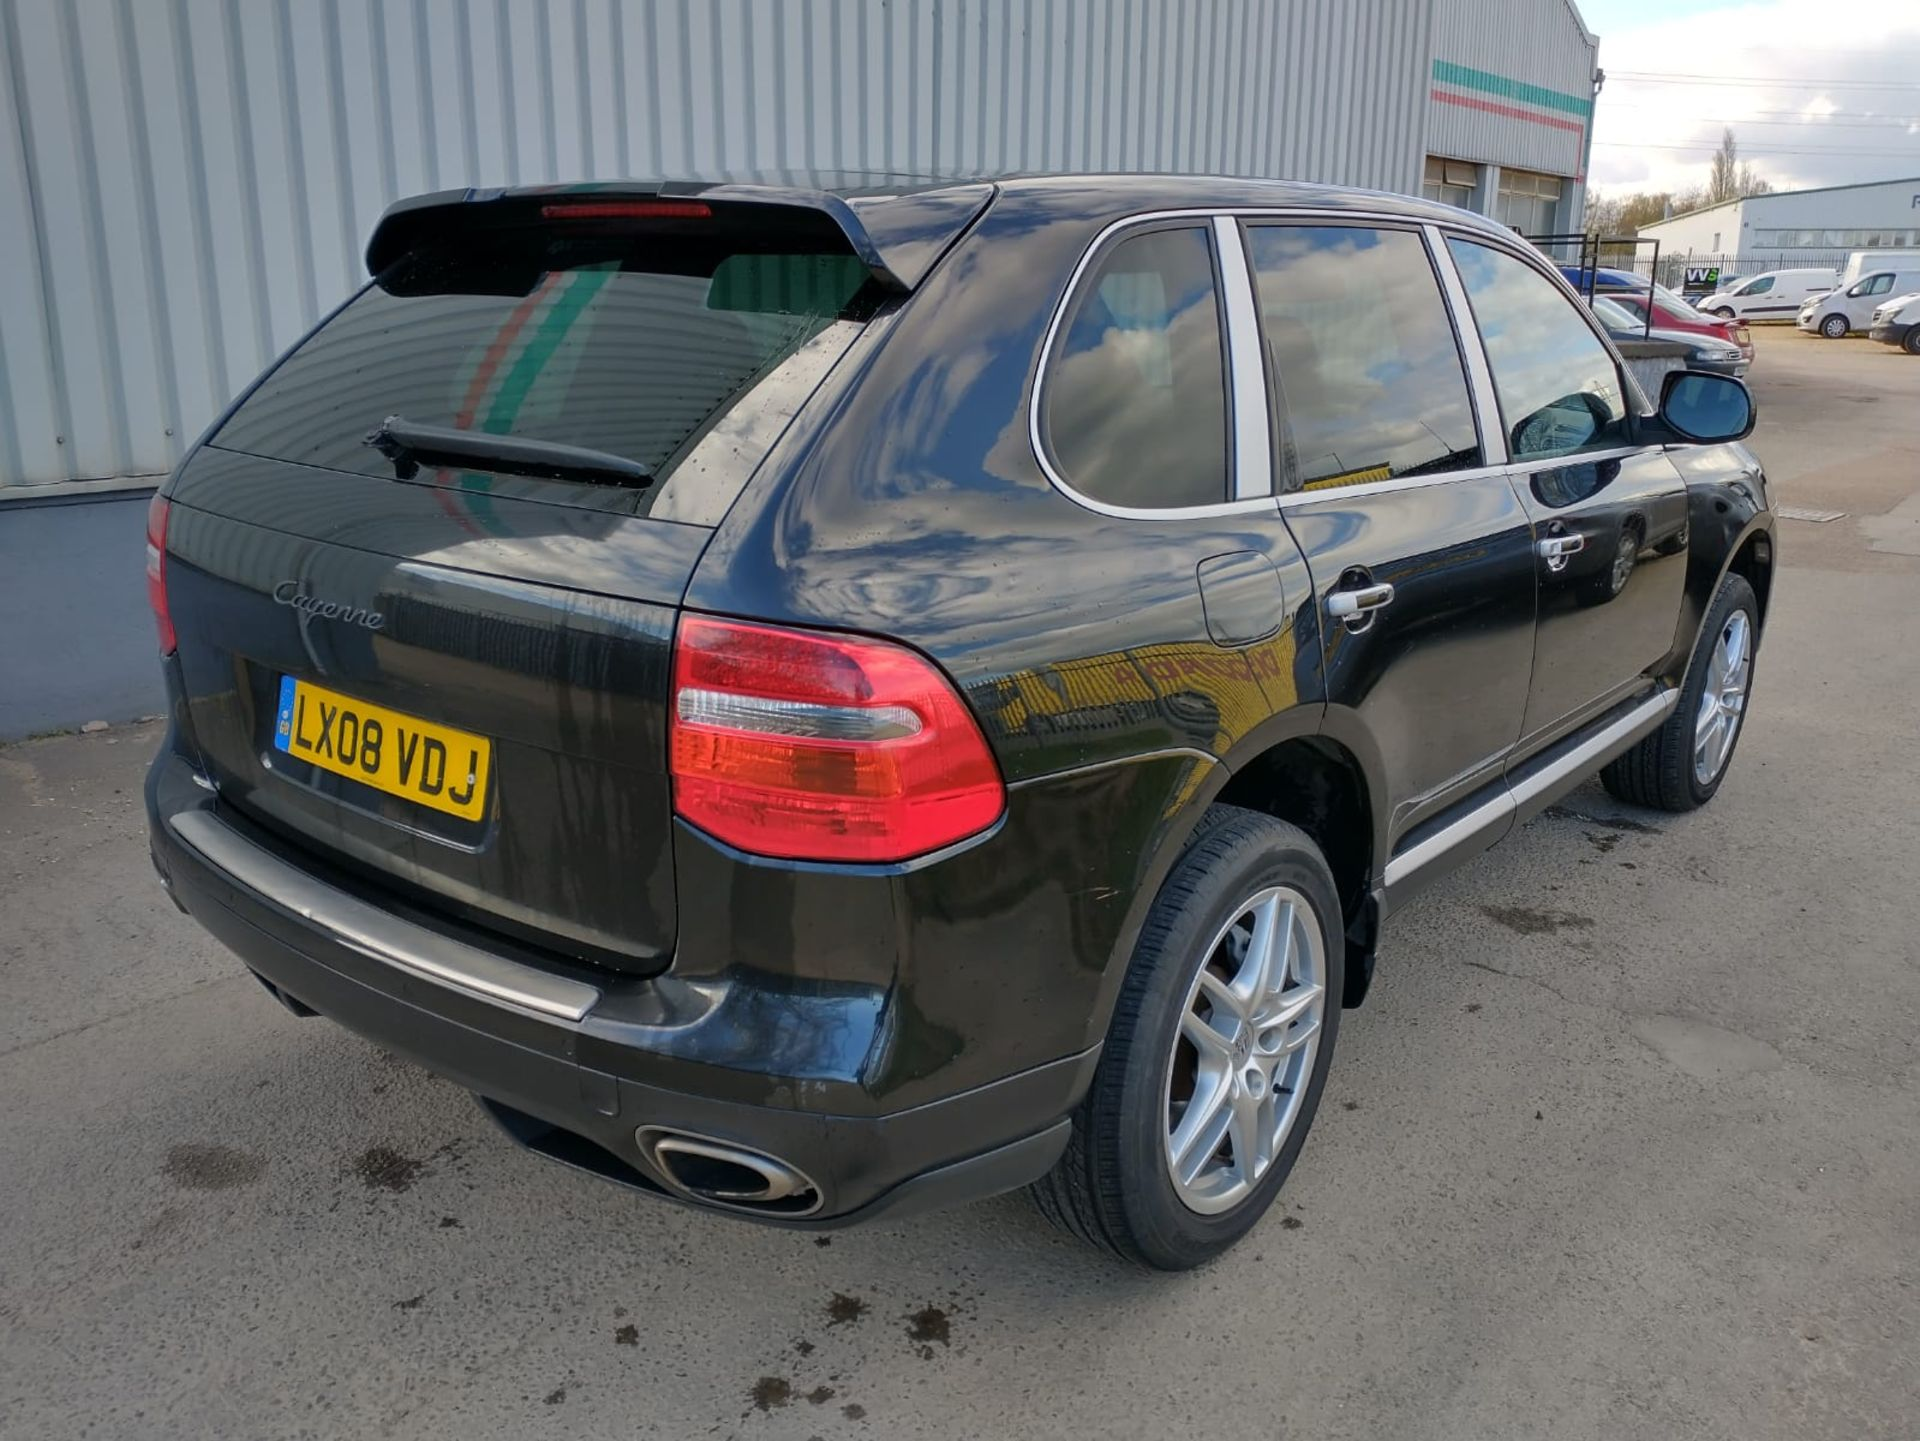 2008 Porsche Cayenne Tiptronic 3.6 5Dr SUV - CL505 - NO VAT ON THE HAMMER - Location: Corby, Northam - Image 8 of 16